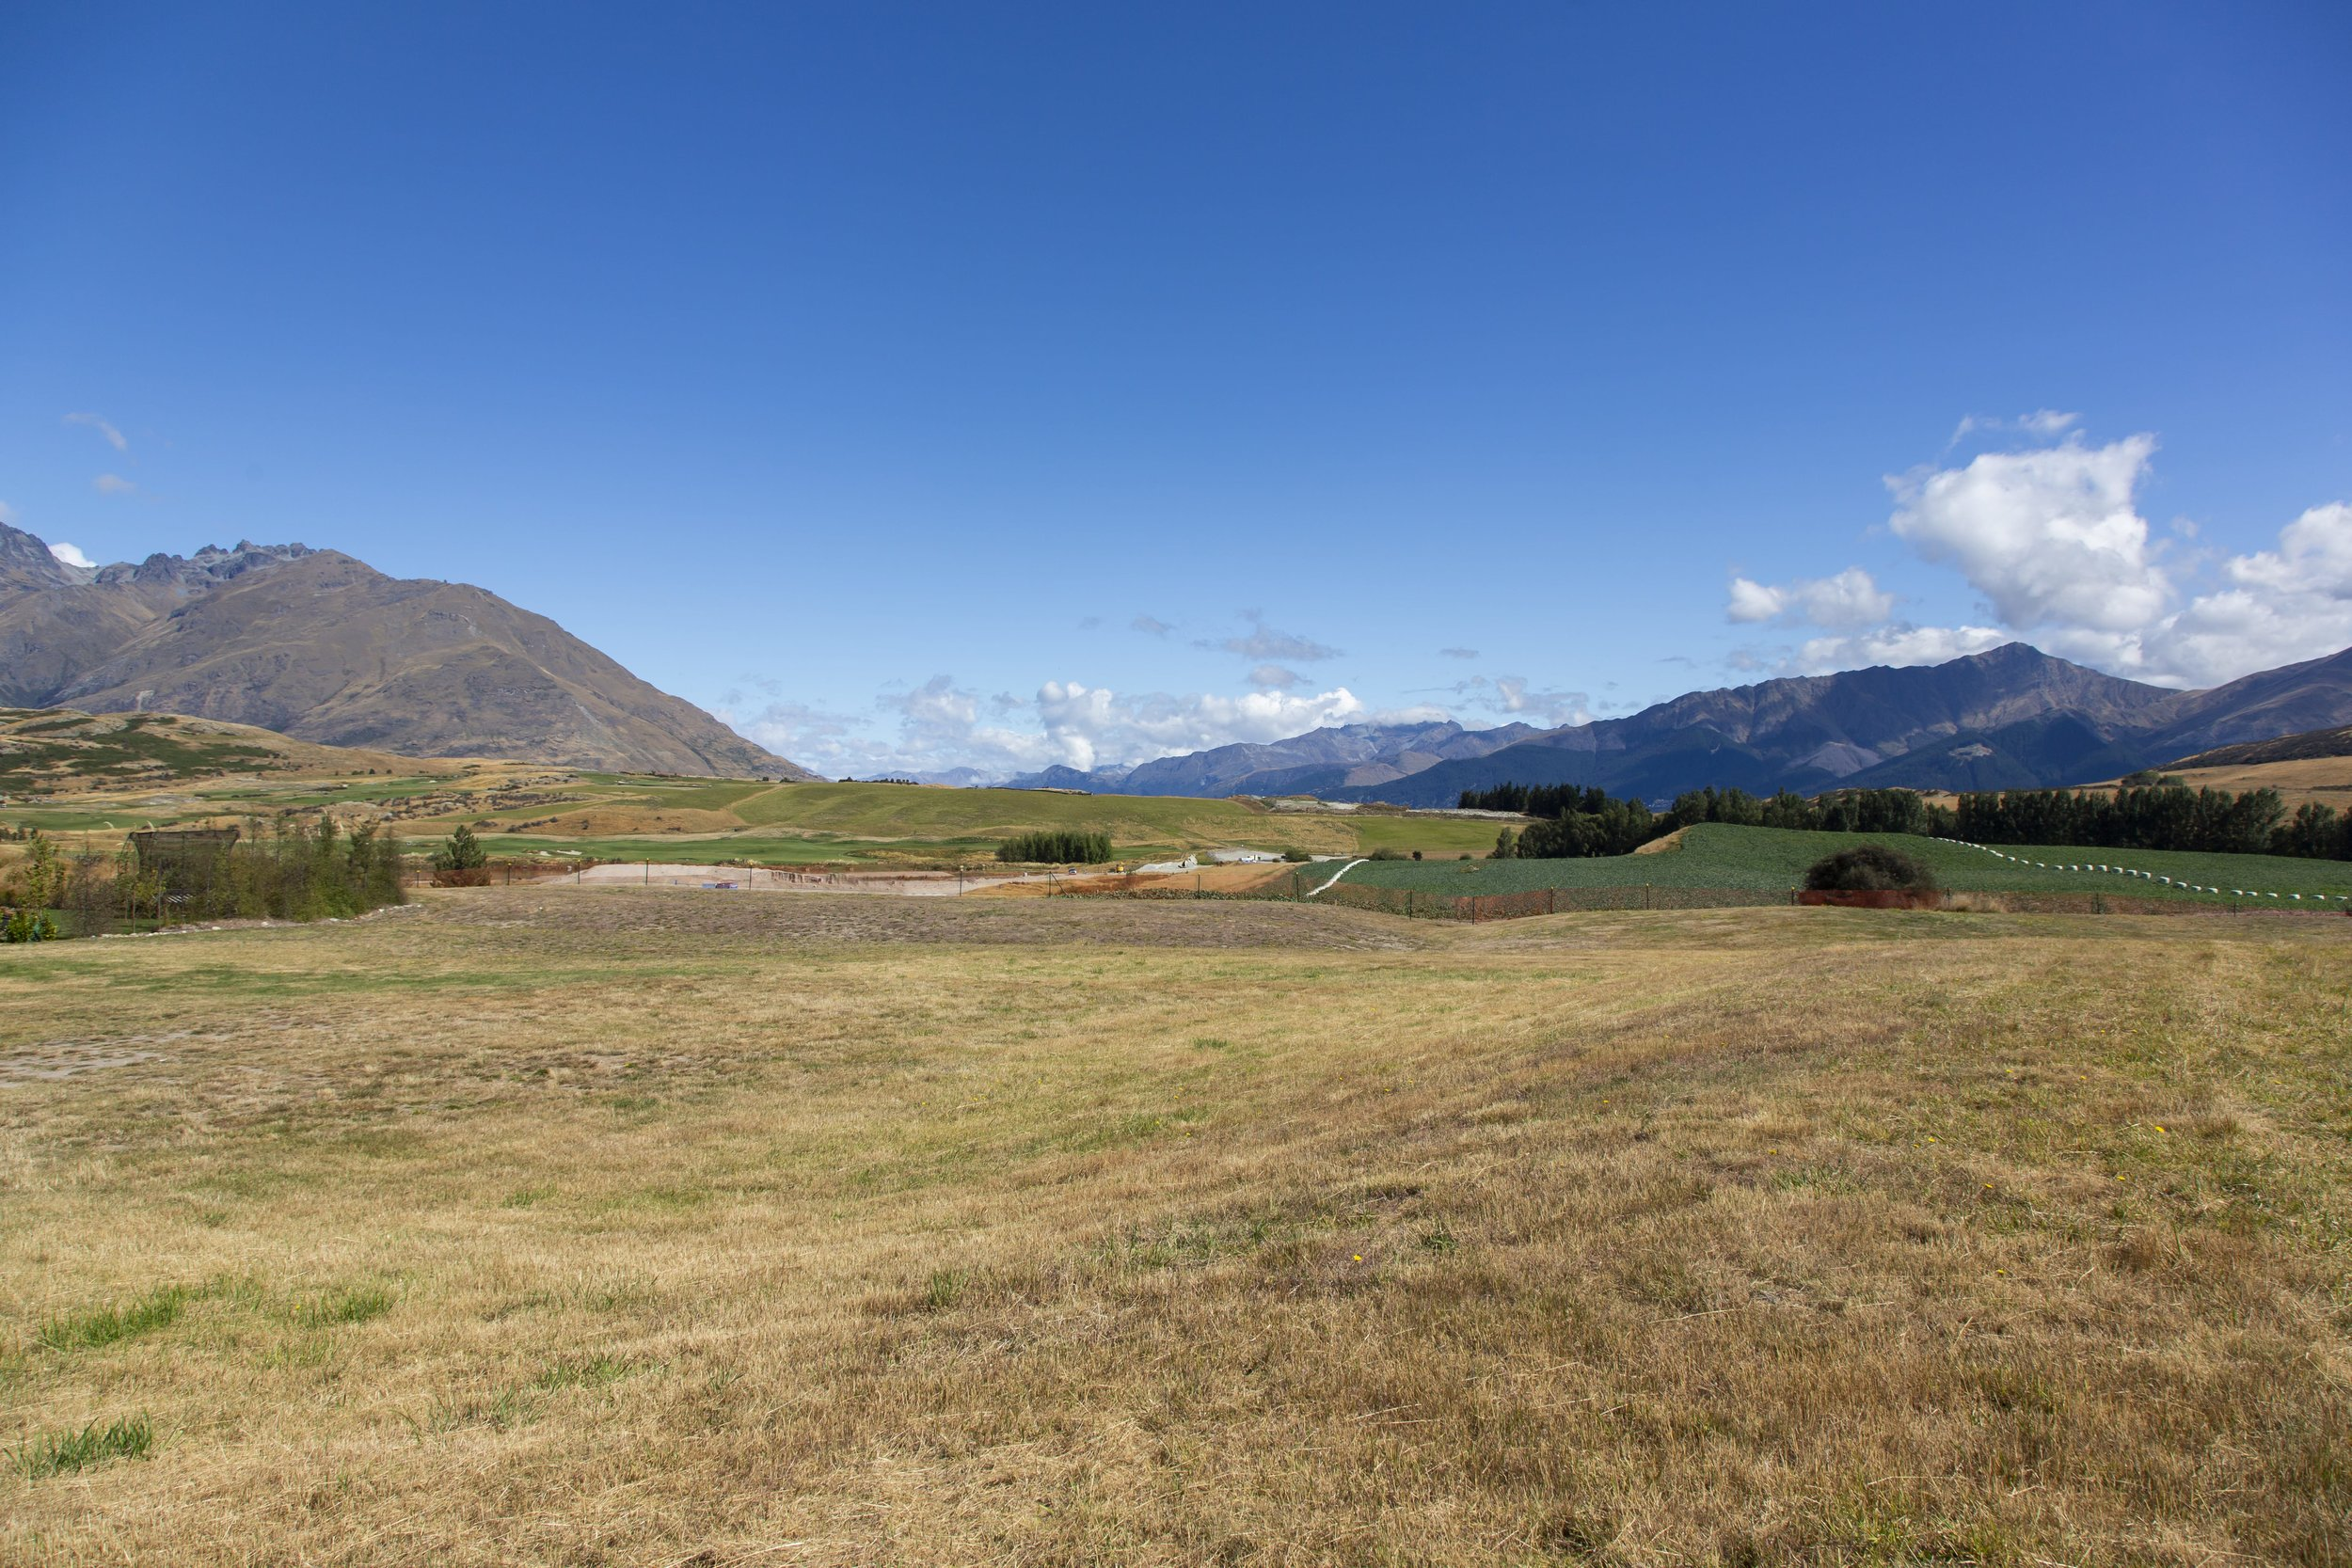 7_Torridon_Court_Jacks_Point_014-min.jpg